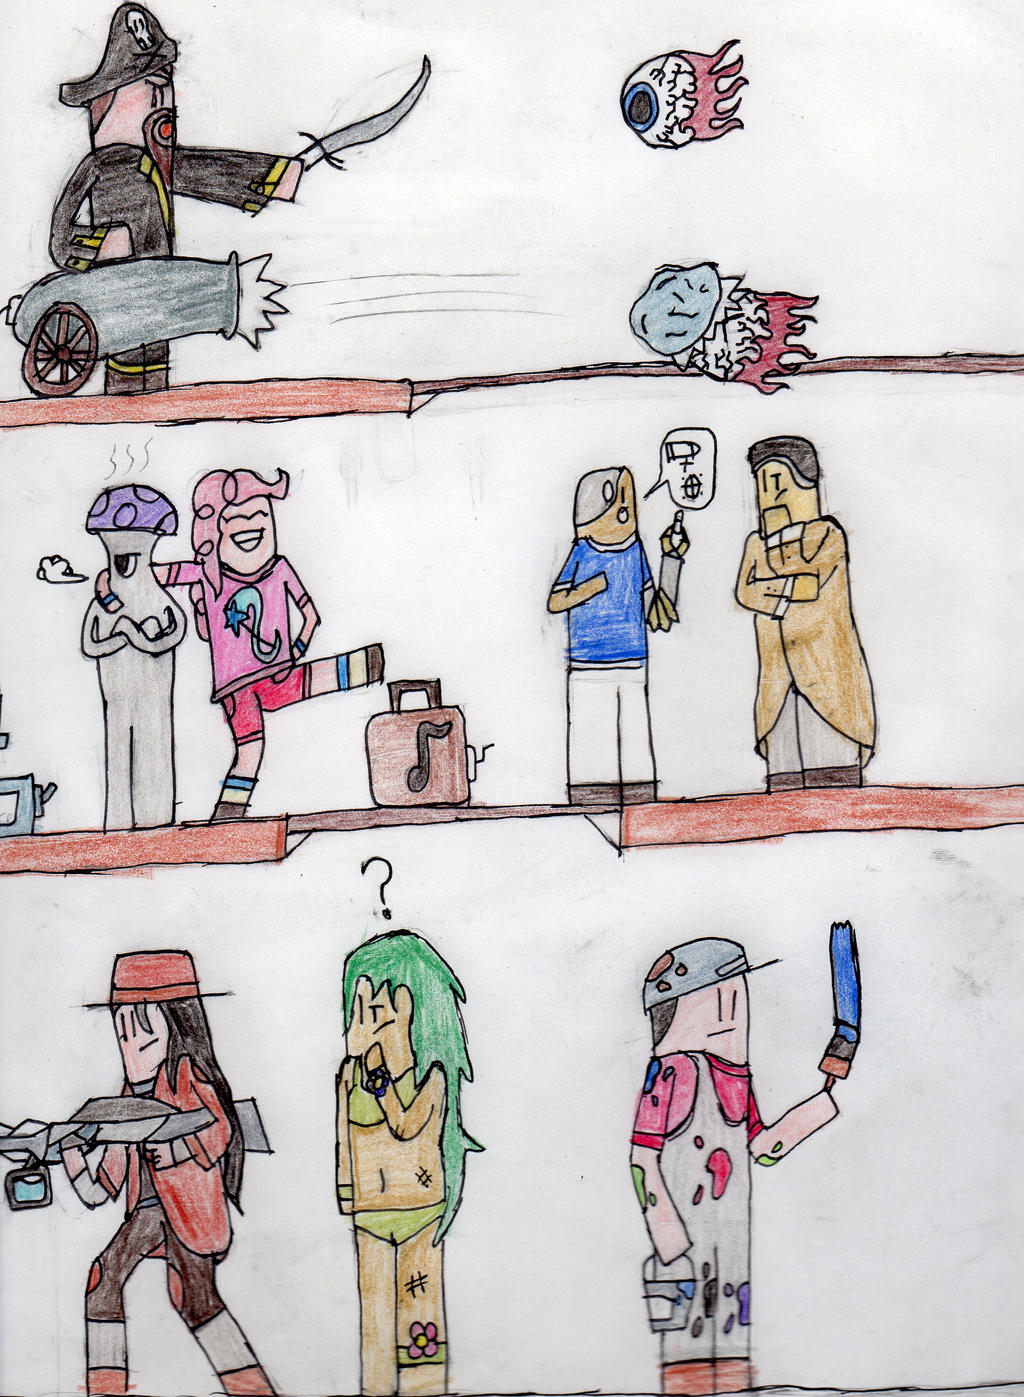 Terraria: The Daily Life Of An NPC 1.2 By Glitch-Sketch On